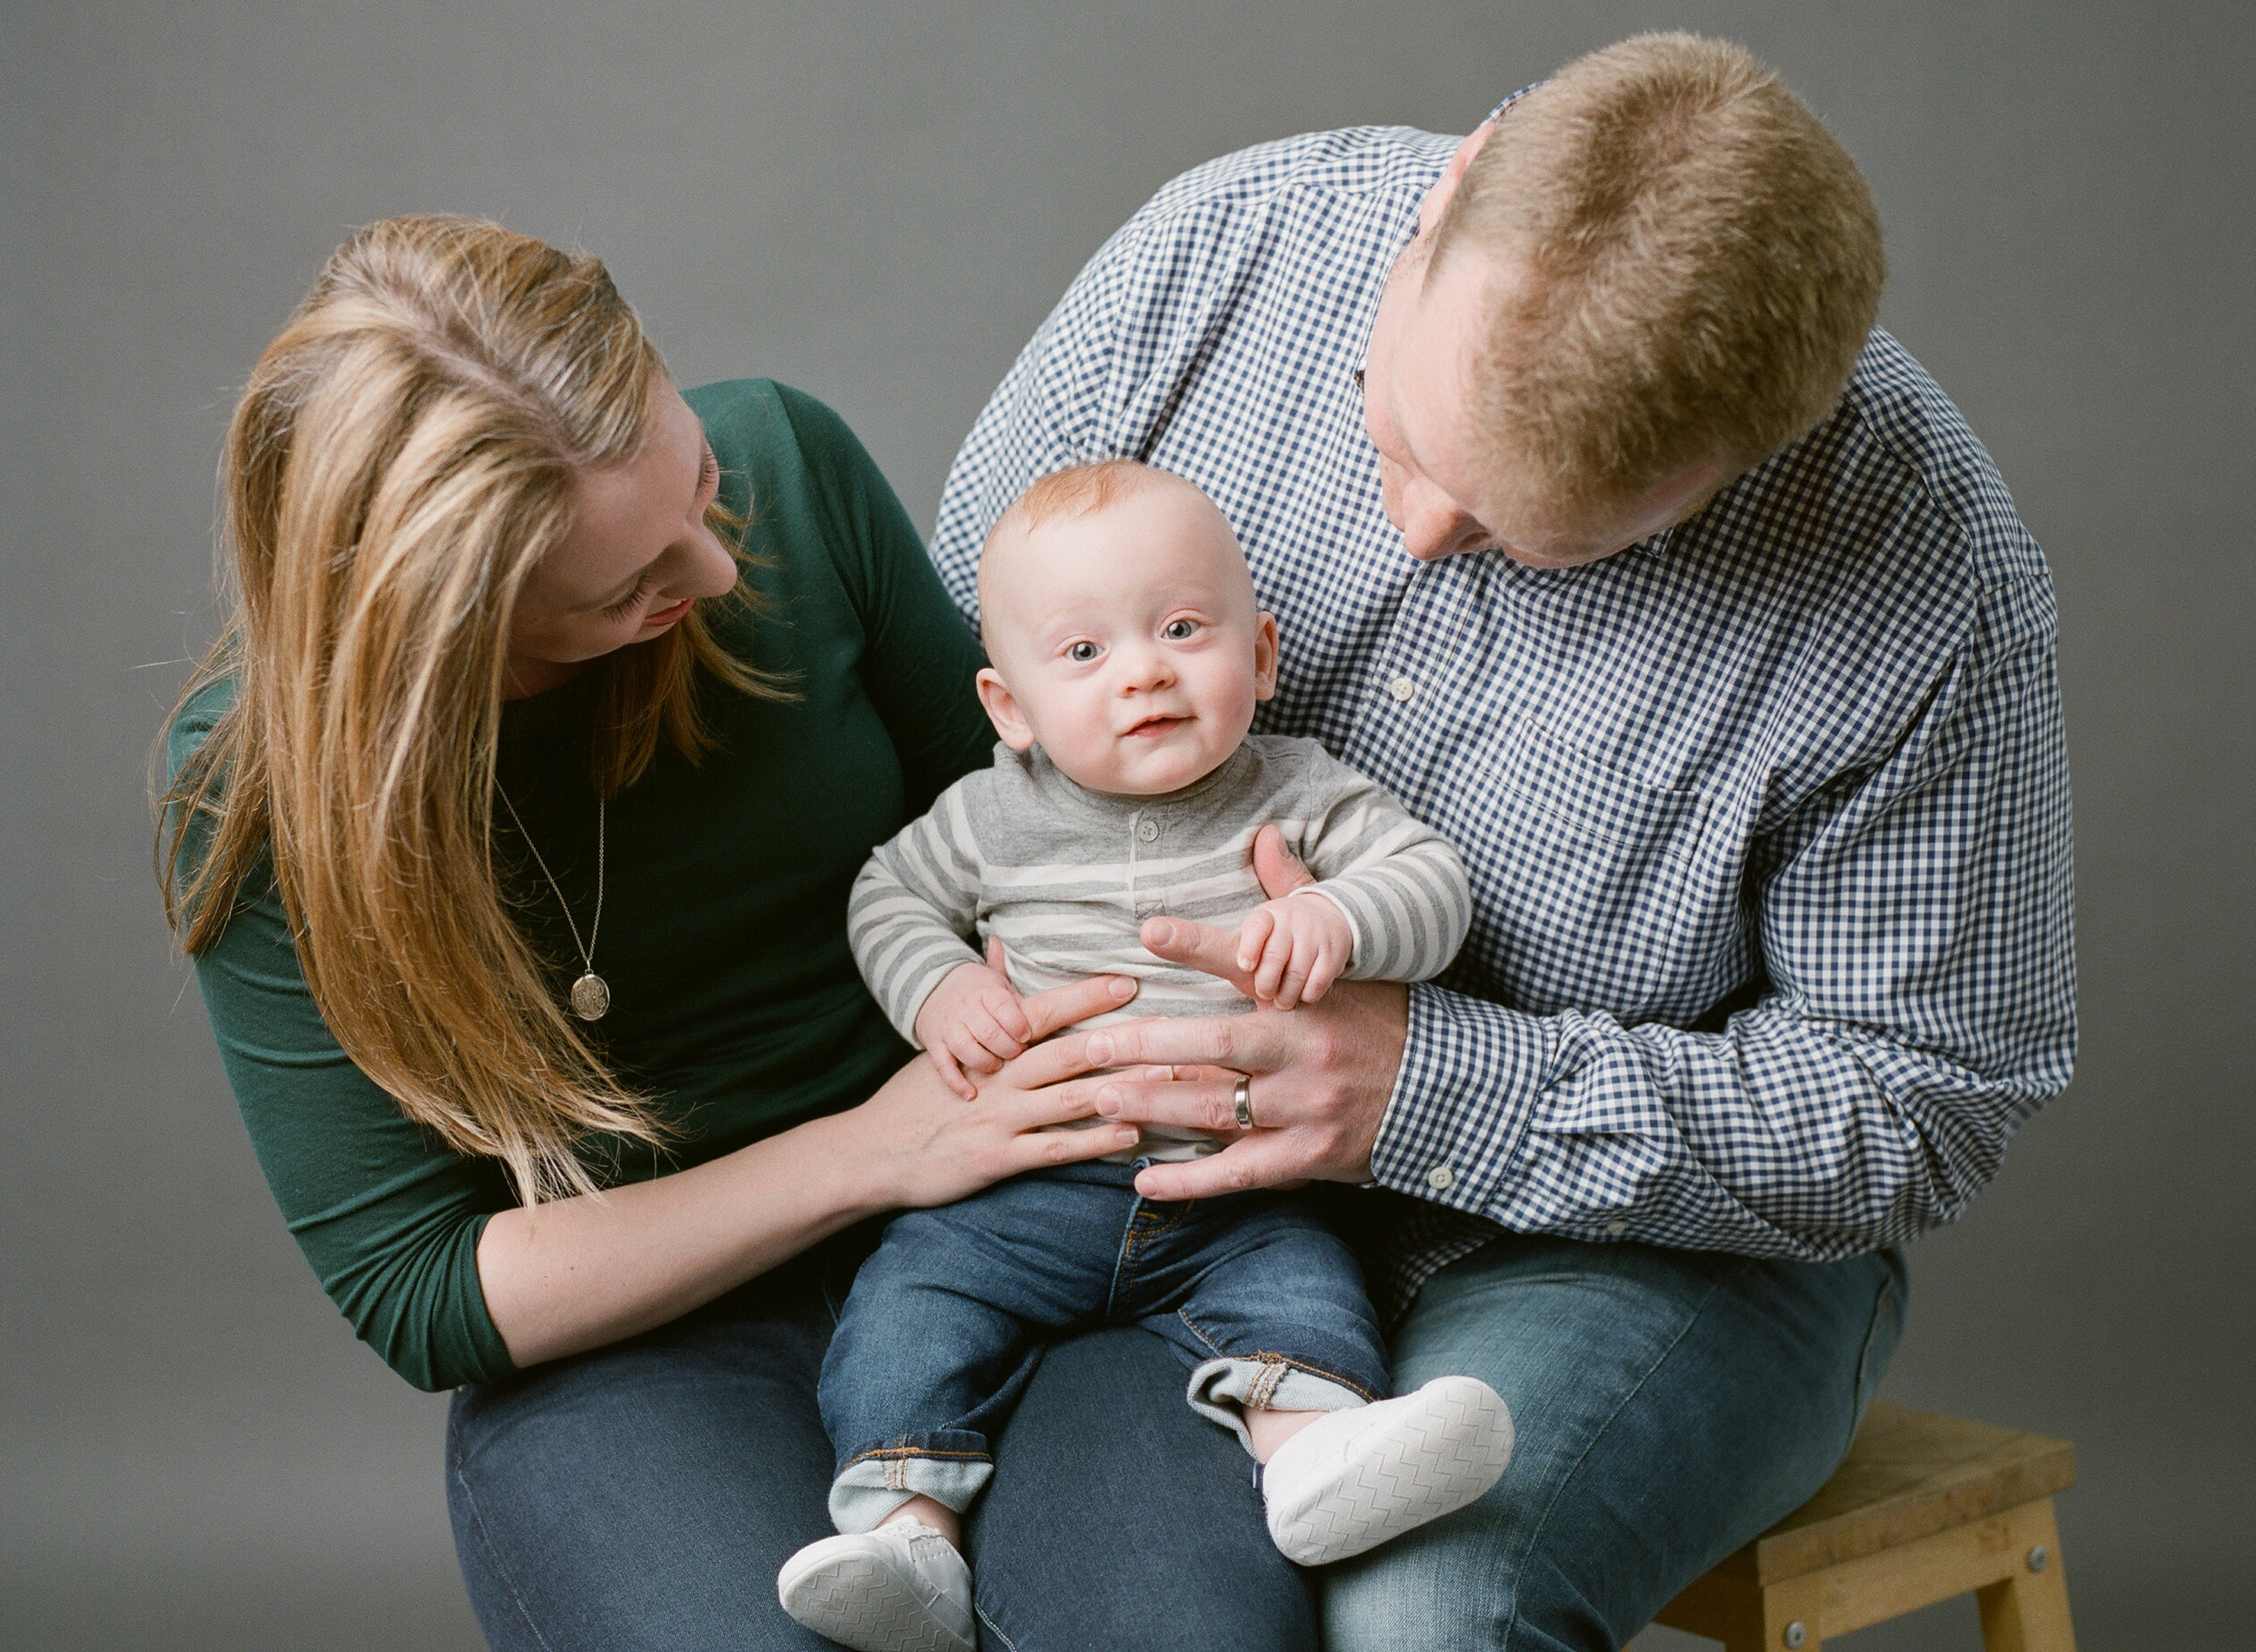 Newborn photographer Seattle | Sandra Coan | family portrait photographed on film